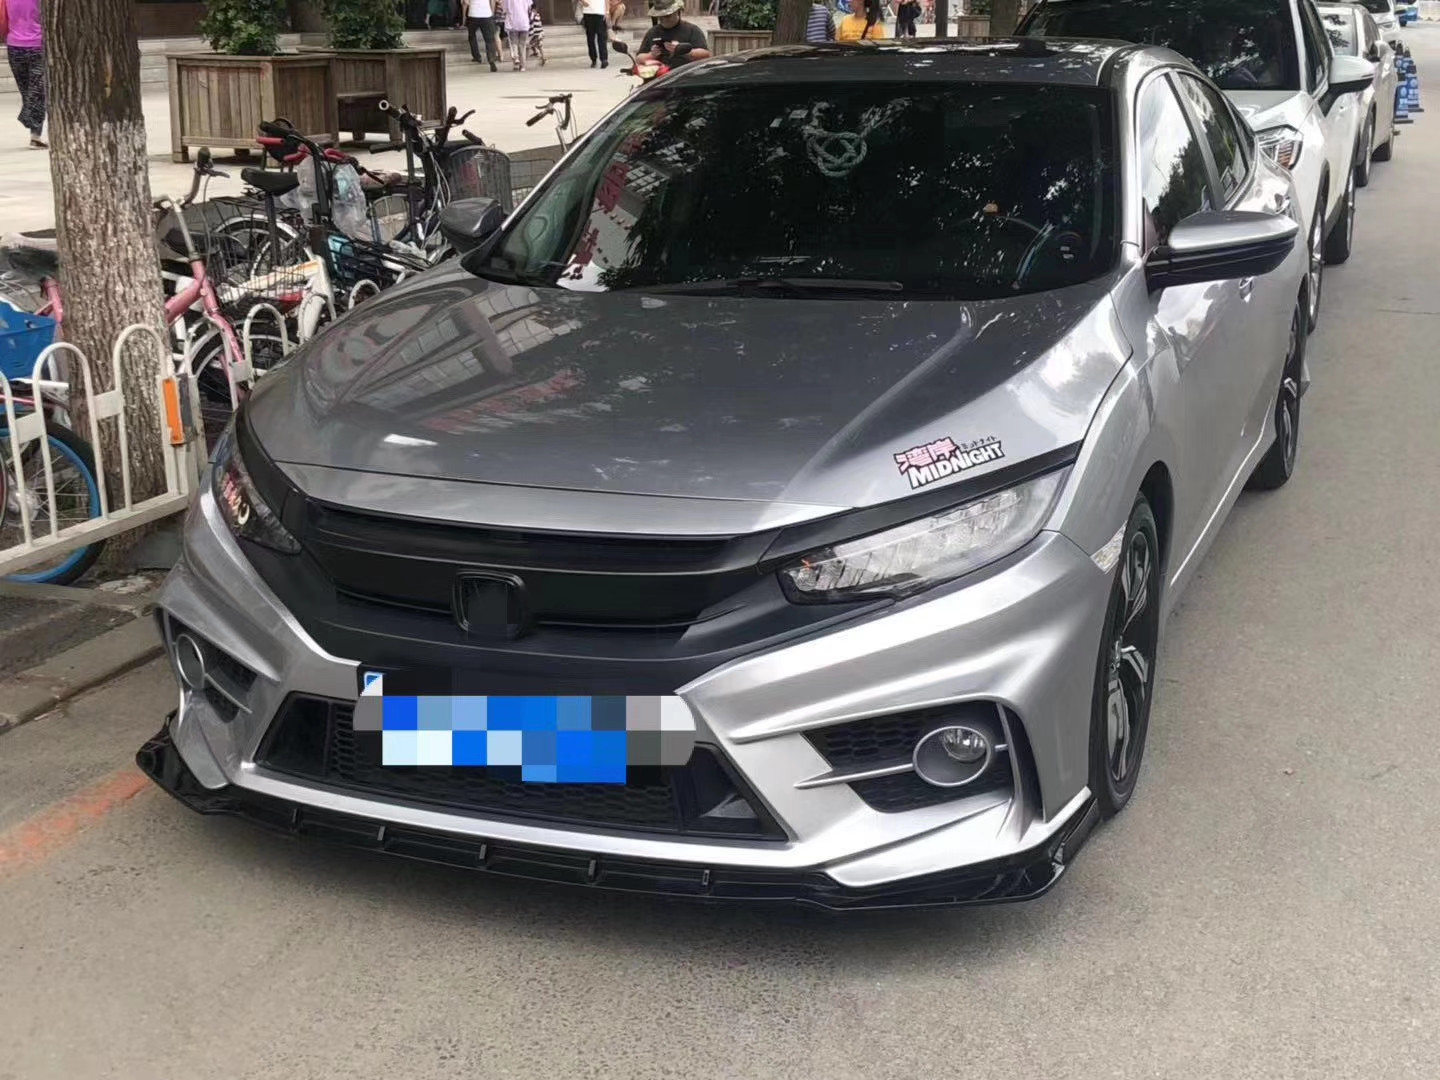 Factory Pp Bumper High Quality Body Kits For Honda Civic Yofer Fc 450 2016 2018 Buy Auto Parts Factory Pp Abs Bumper High Quality Bodt Kits For Honda Civic Yofer Fc 450 Product